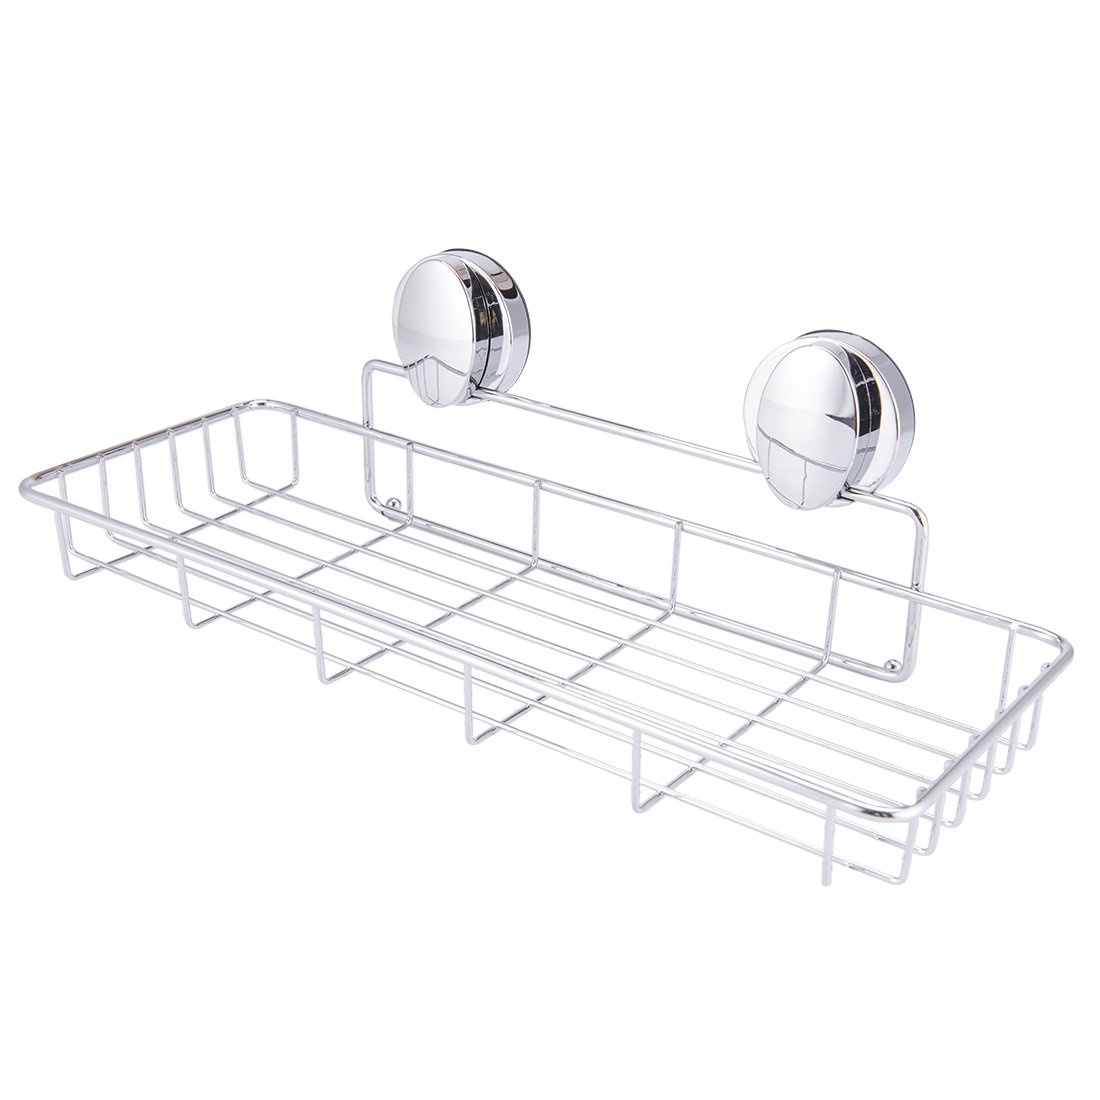 Super Vacuum Suction Cup Shower Caddy Basket, Rustproof Soap Dish Rectangle Basket Wall Shelves Shampoo Holder Organizer for Kitchen & Bathroom Storage, Chromed Finished